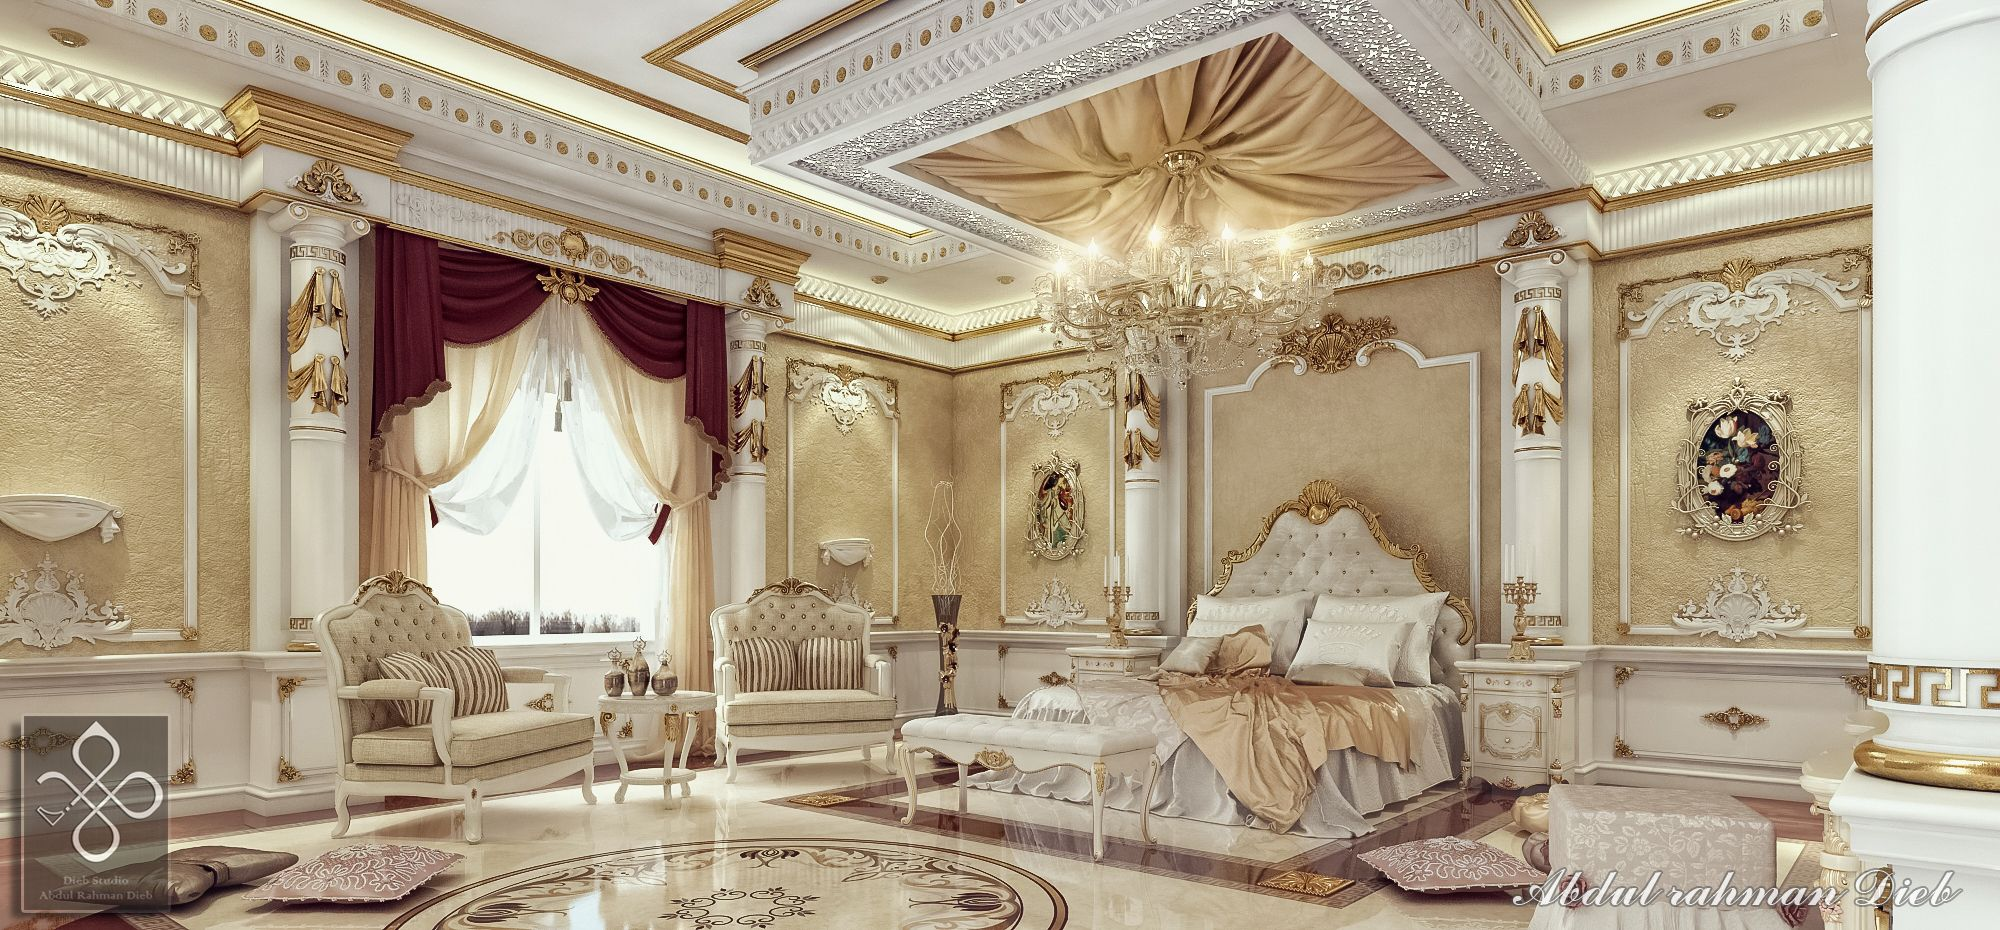 Royal bedroom 3d interiors pinterest royal bedroom for Bedroom designs royal